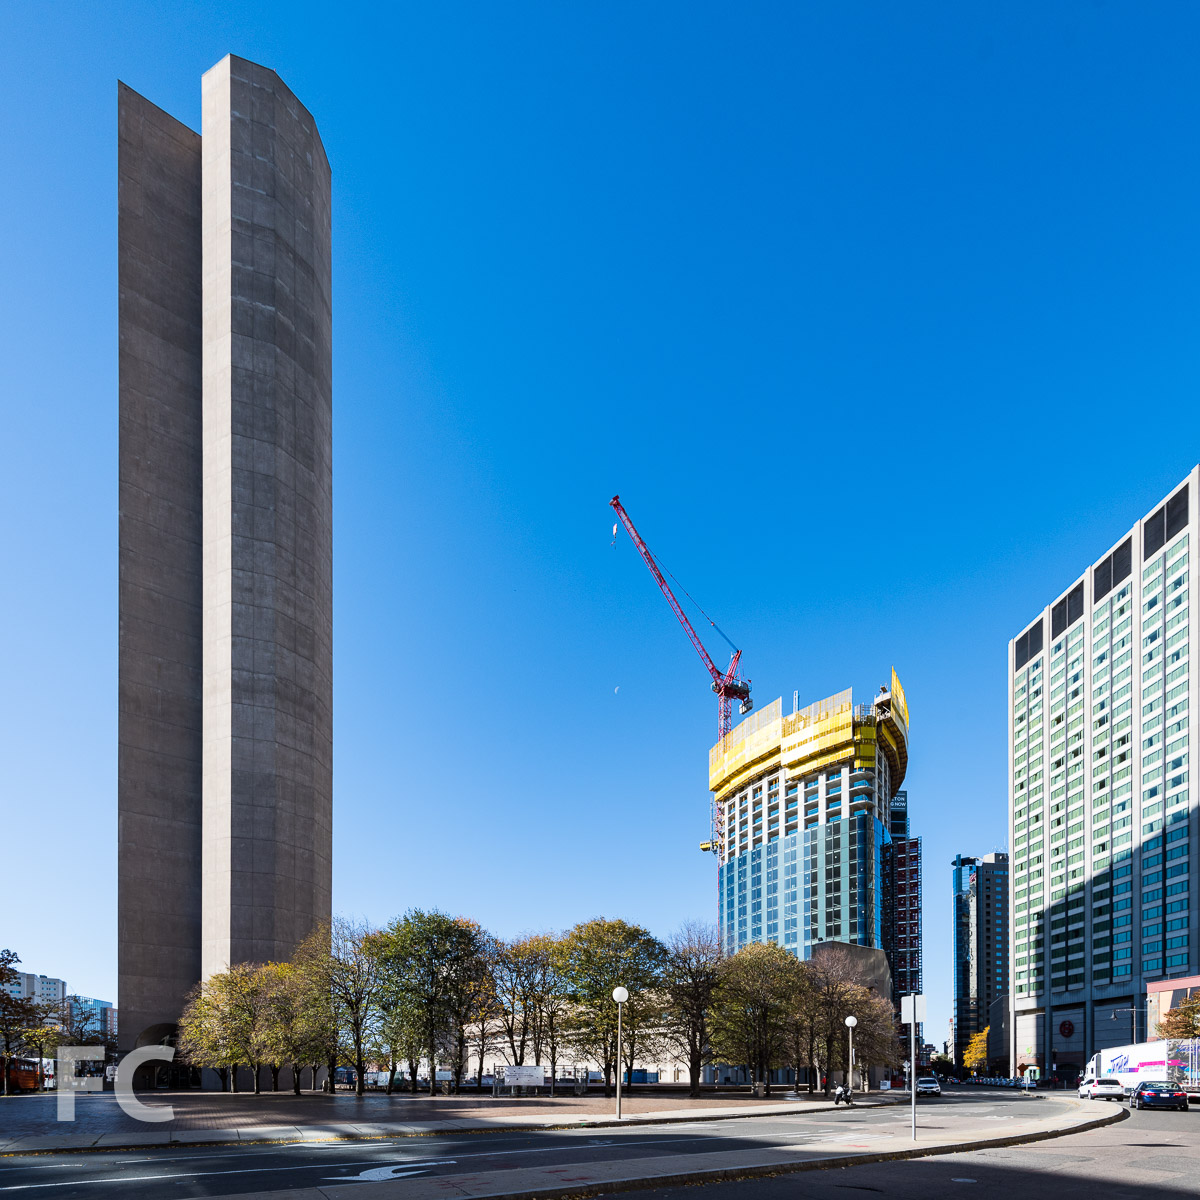 East facade of One Dalton (right) and I.M. Pei's 177 Huntington (left) completed in 1973.